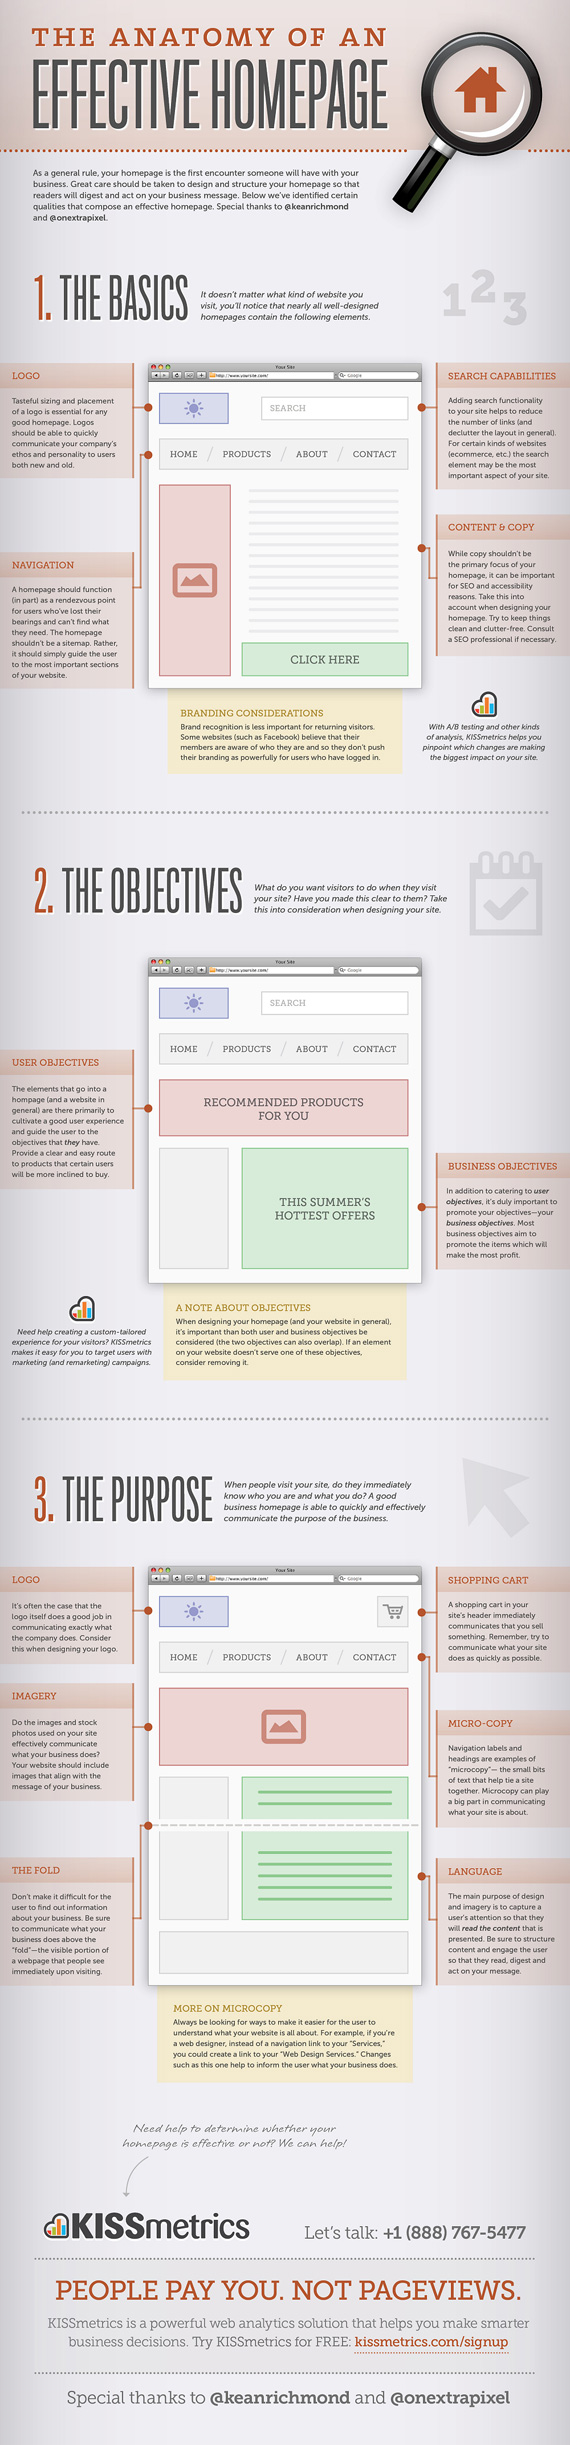 The Anatomy of an Effective Homepage